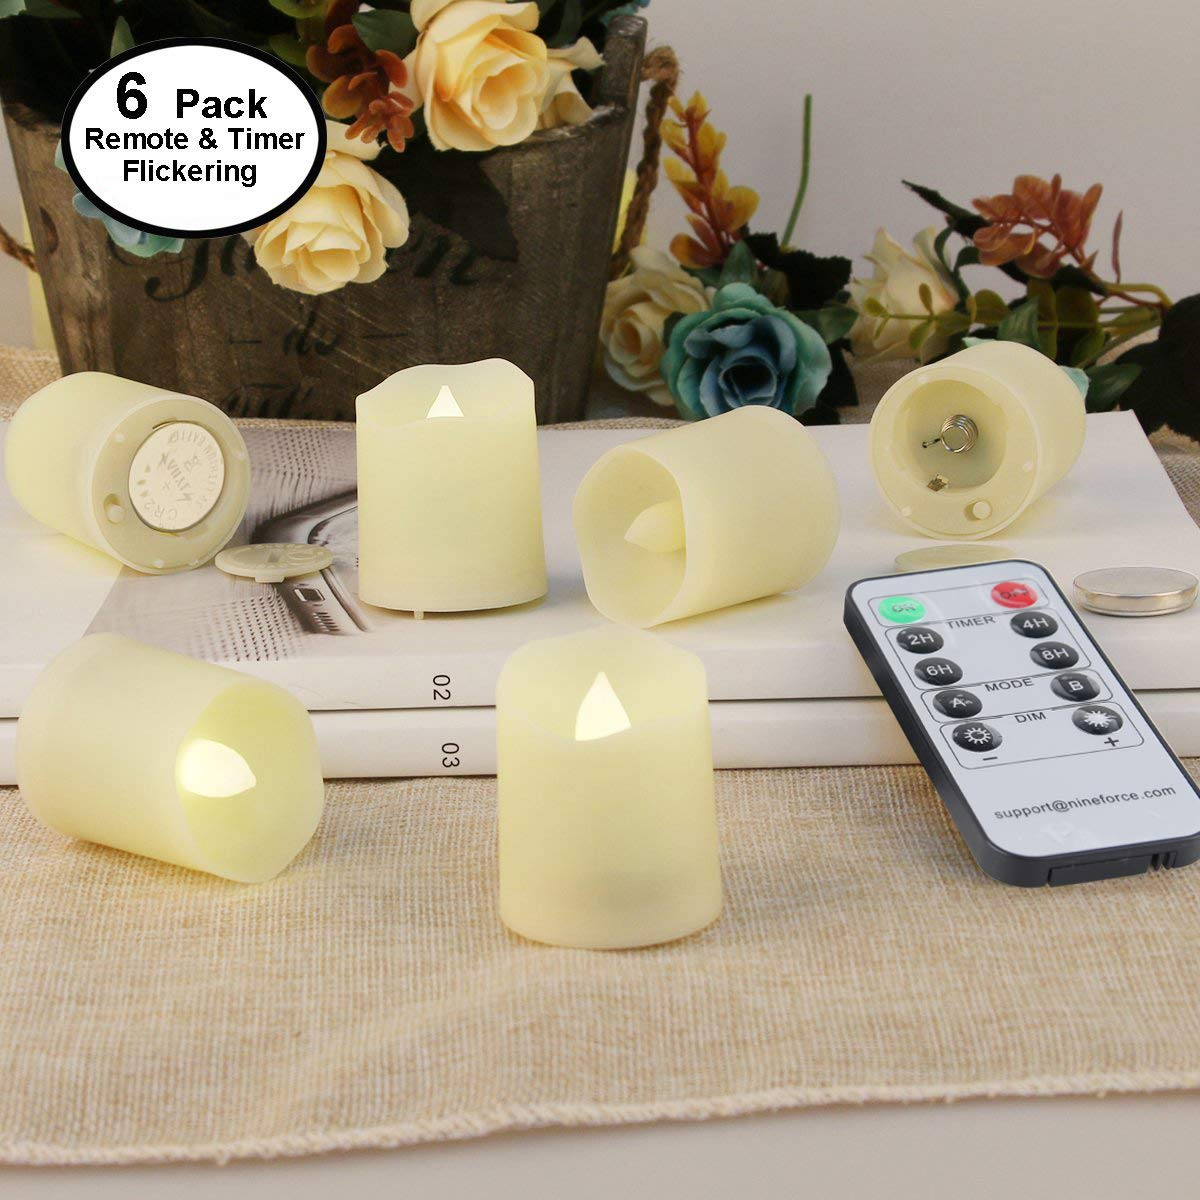 Flameless Candles with Remote and Timer - Tealight Candles - LED Tea Lights with Remote - Unscented Outdoor Flickering Candles - Battery Operated Candles 200 Hours - 6 set x 1.8'' by CelebrationLight